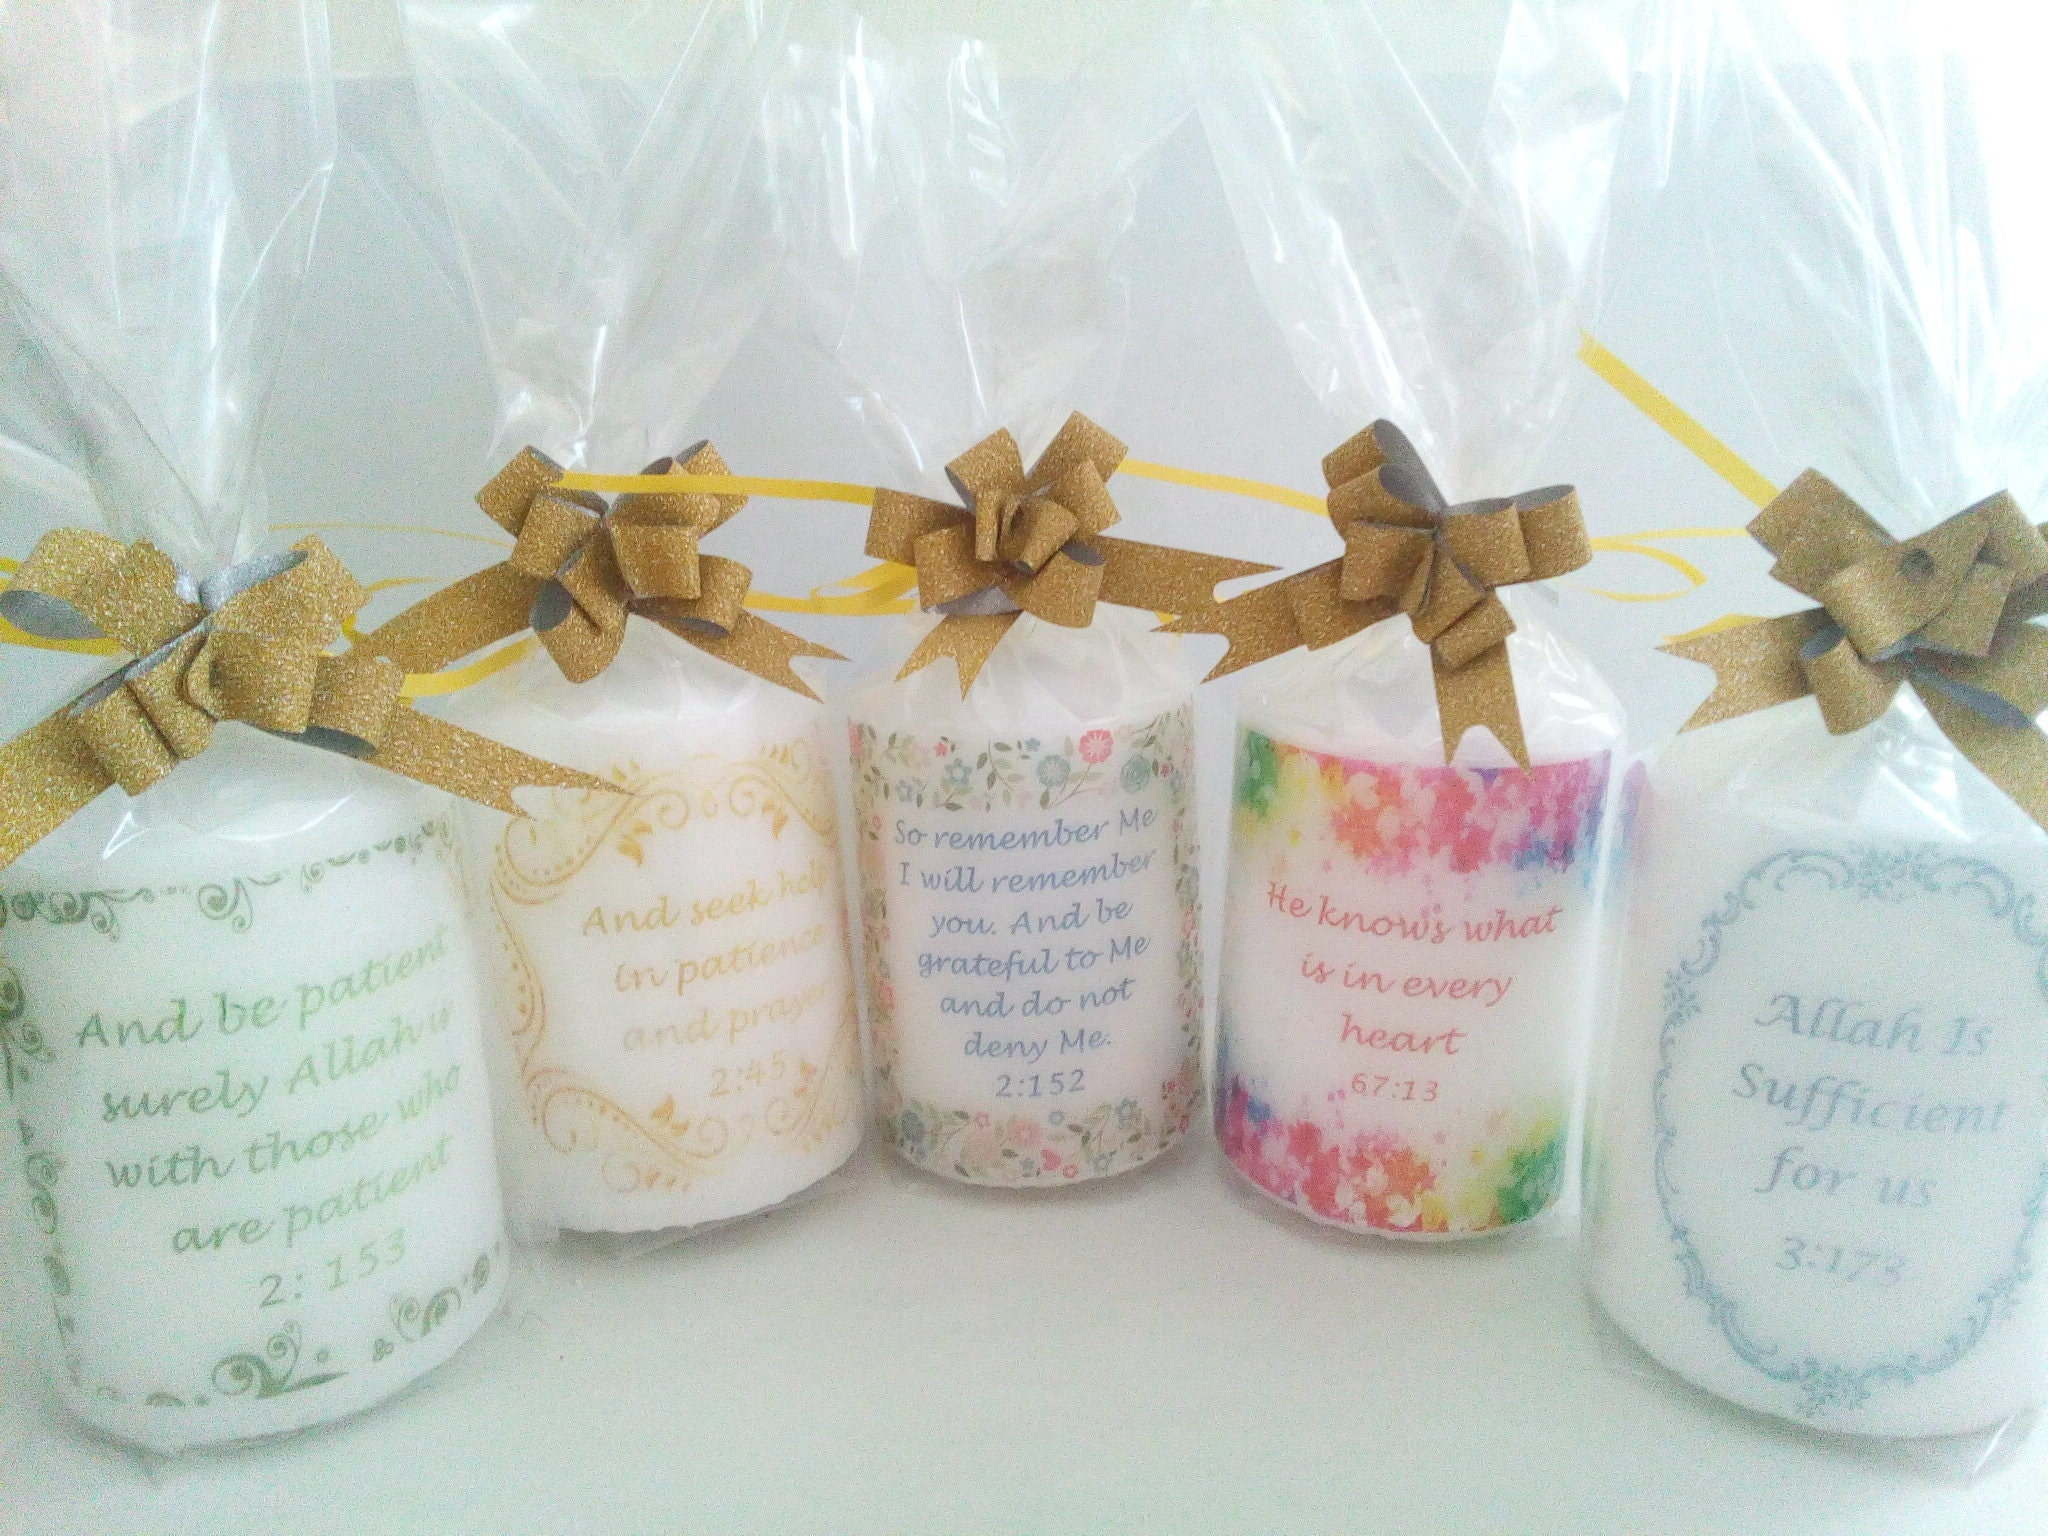 Candle set 2 candles Quran quote / ayat / ayah for